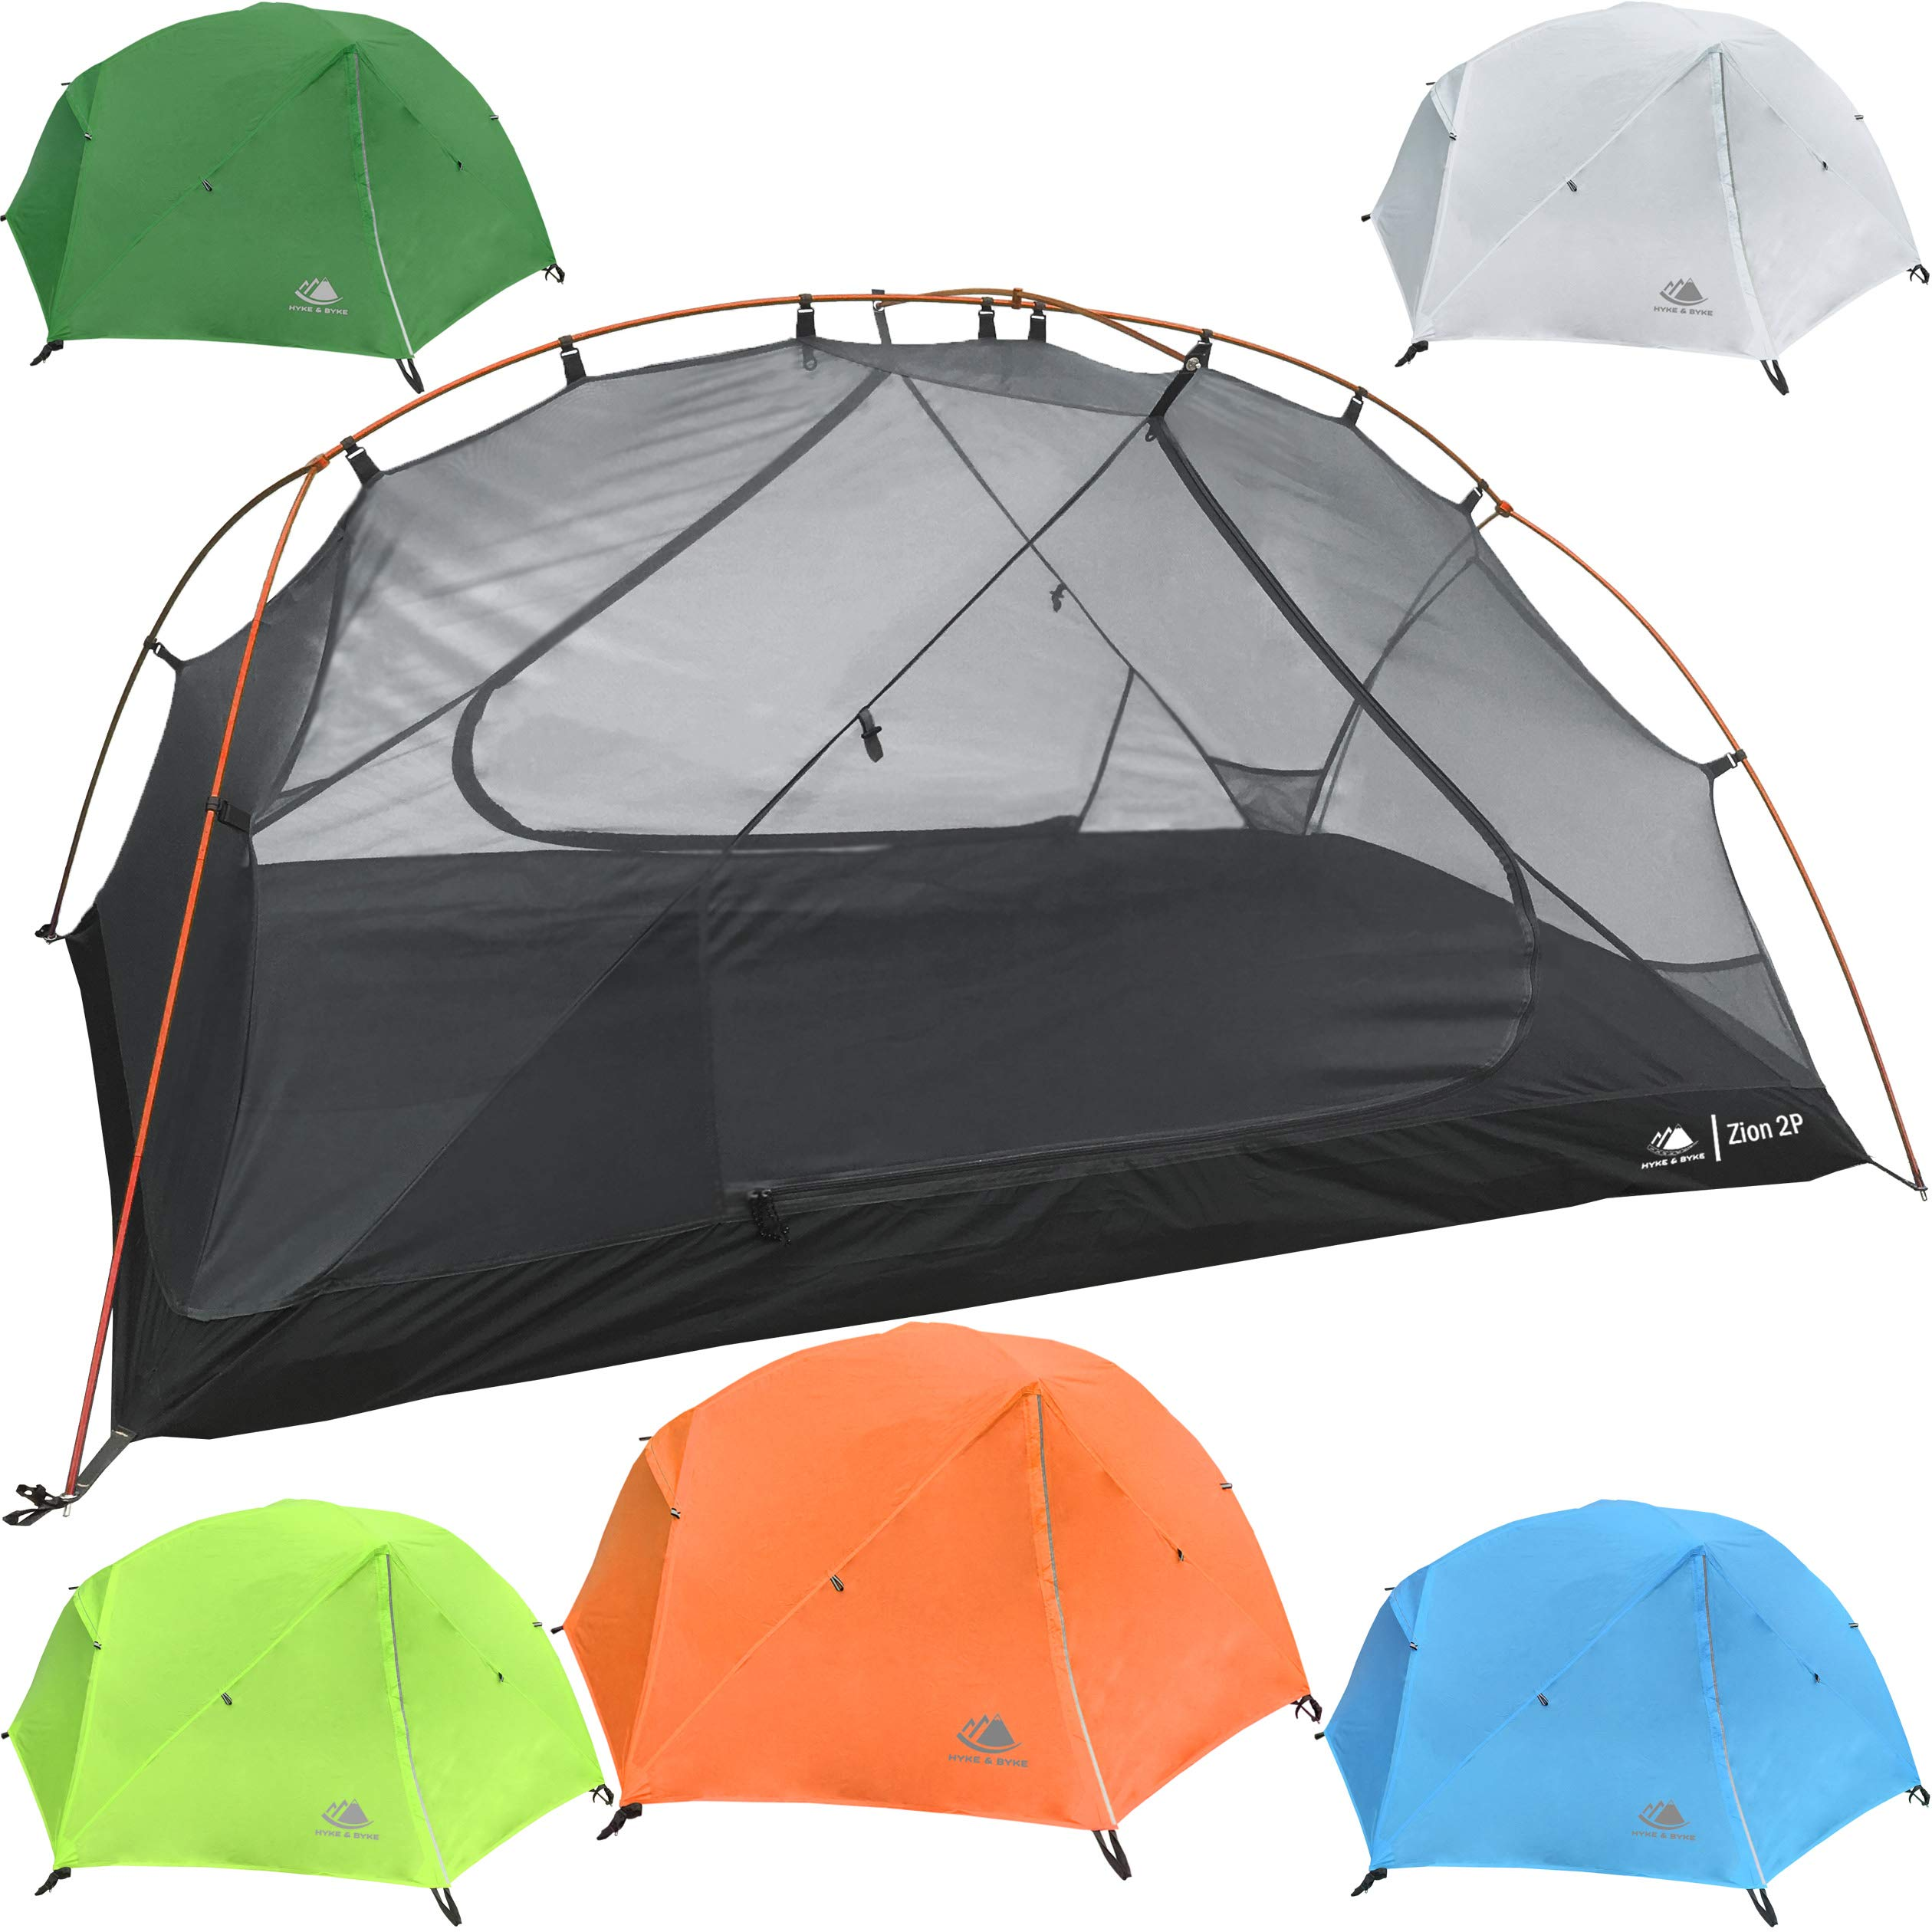 Hyke & Byke 2 Person Backpacking Tent with Footprint - Lightweight Zion Two Man 3 Season Ultralight, Waterproof, Ultra Compact 2p Freestanding Backpack Tents for Camping and Hiking (Orange) by Hyke & Byke